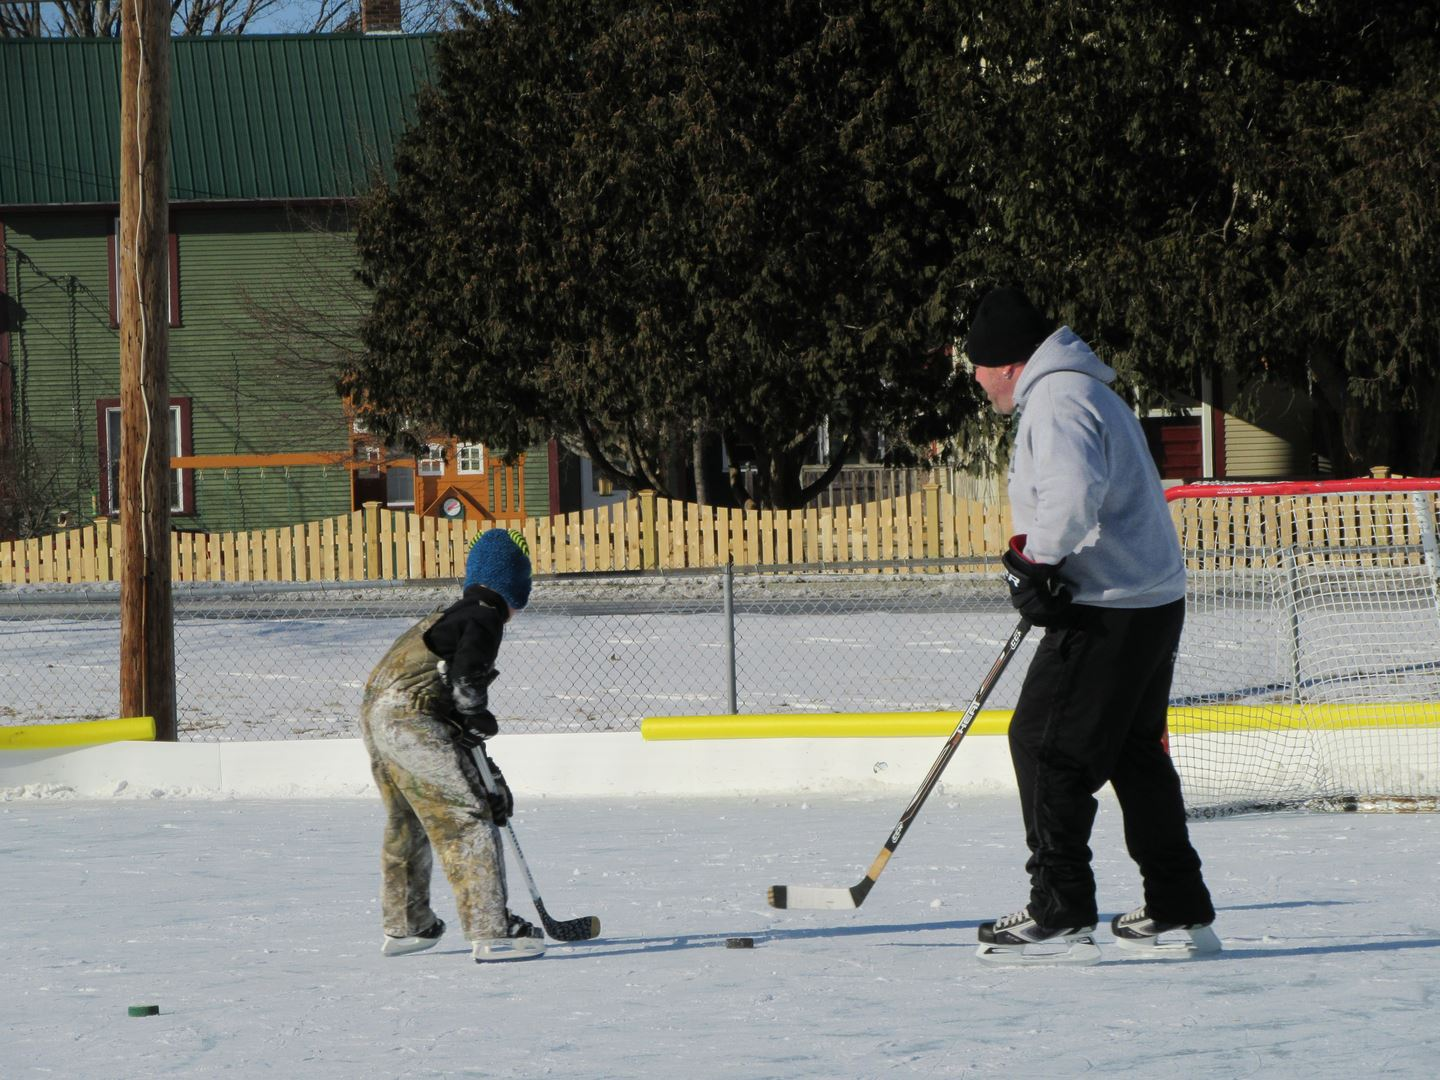 Man and boy playing hockey on Pat Walsh Ice Rink